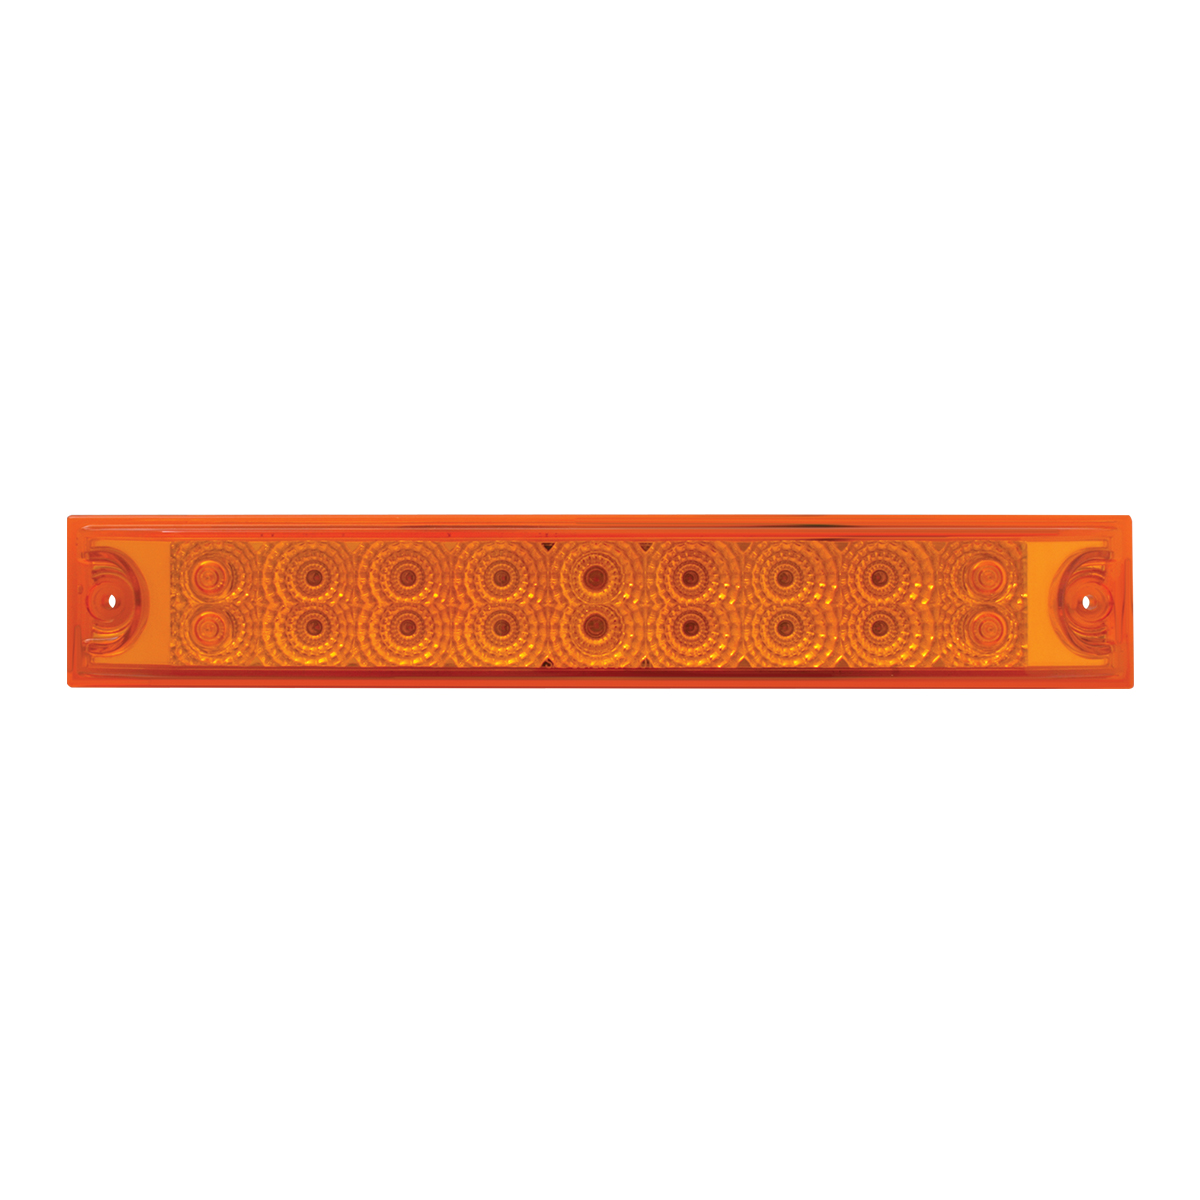 "76985 12"" Spyder LED Light Bar"